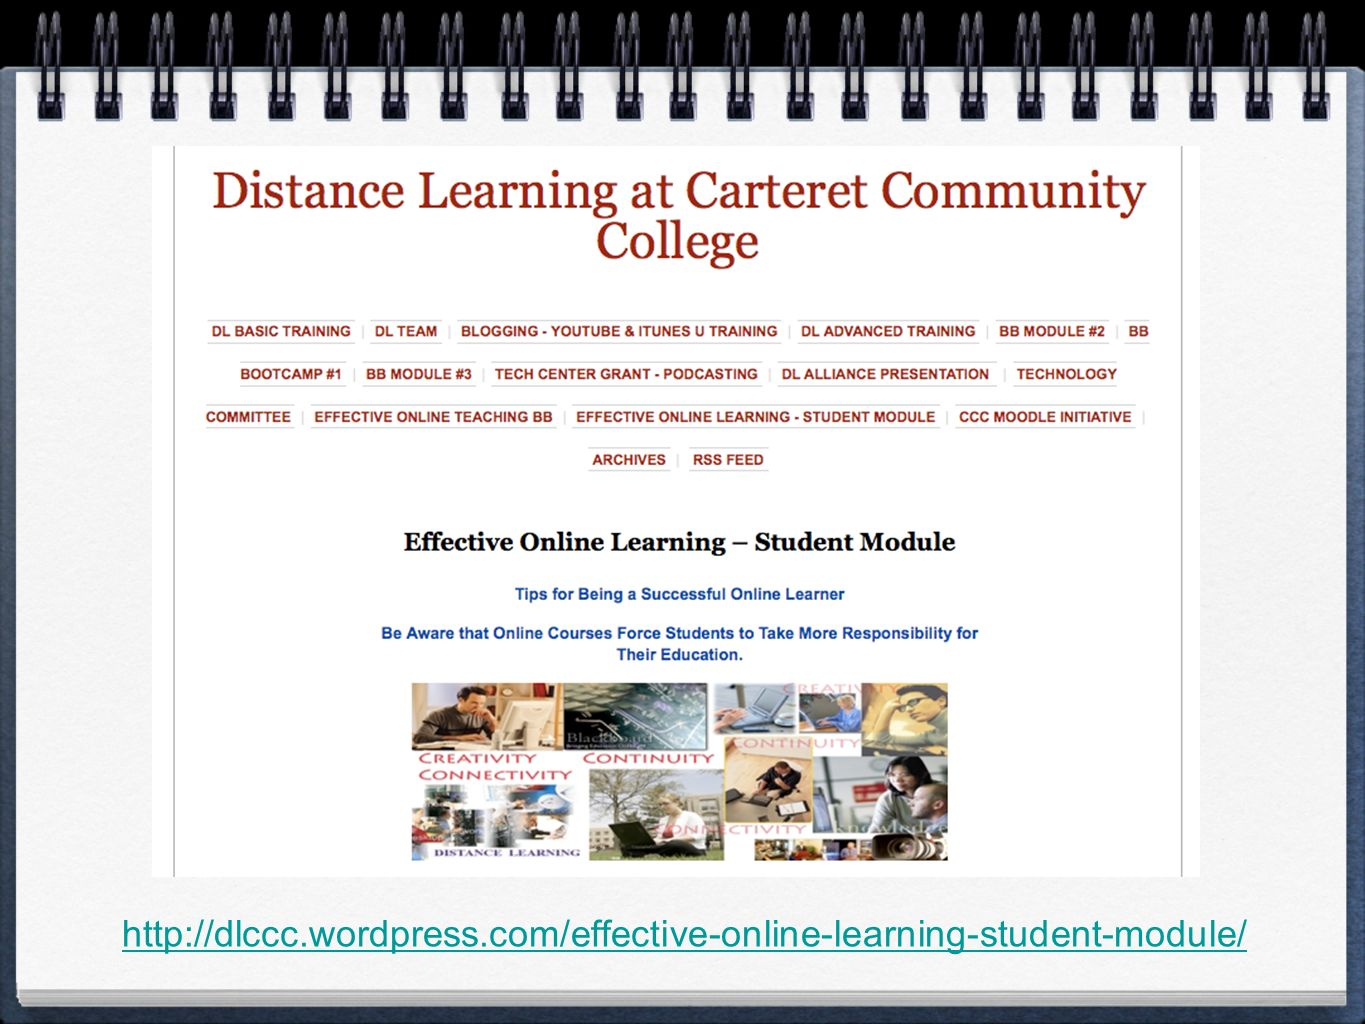 http://dlccc.wordpress.com/effective-online-learning-student-module/